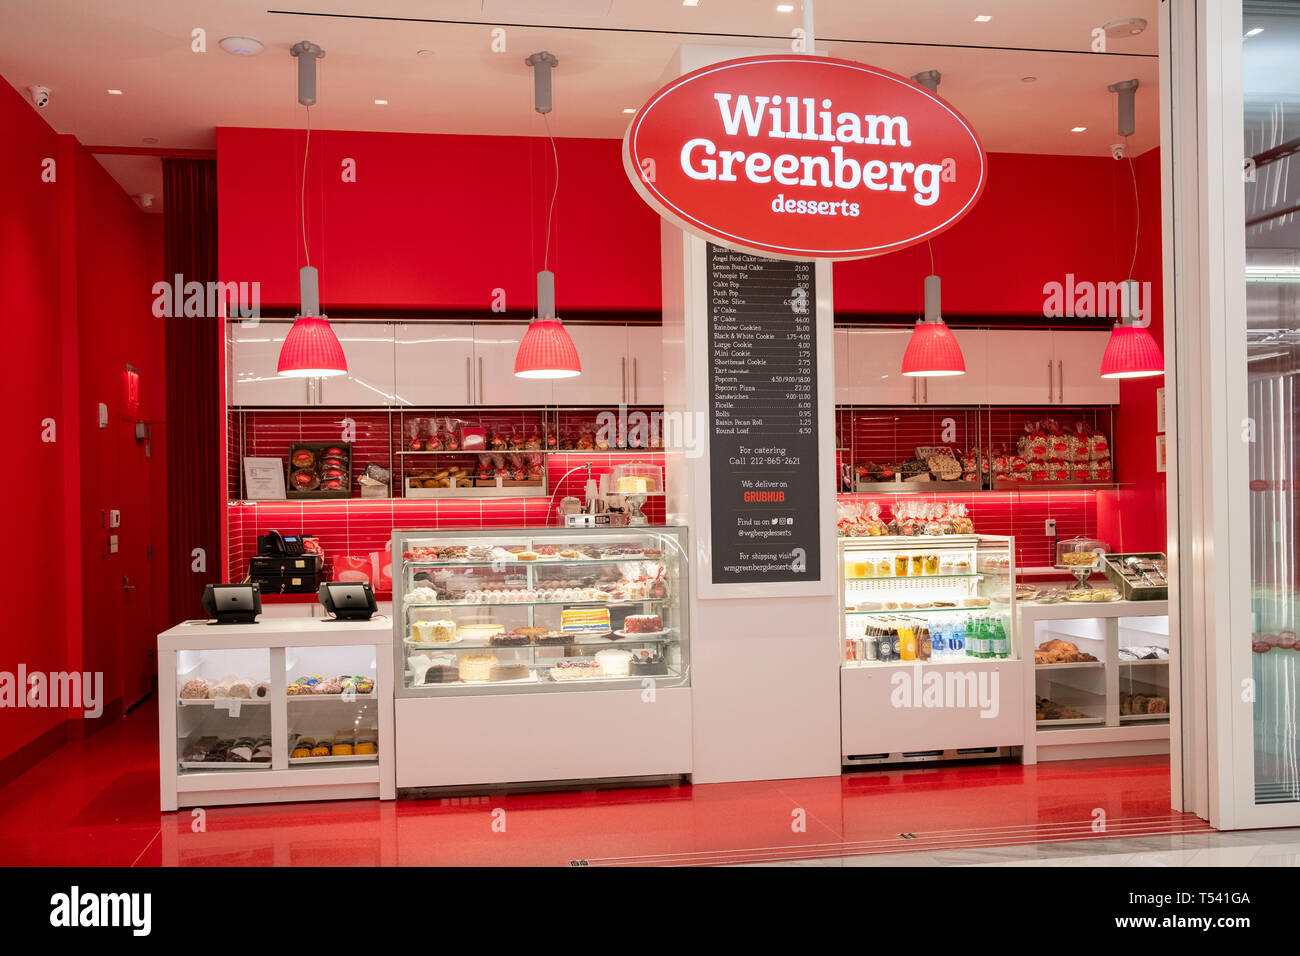 Greenberg Stock Photos & Greenberg Stock Images - Alamy